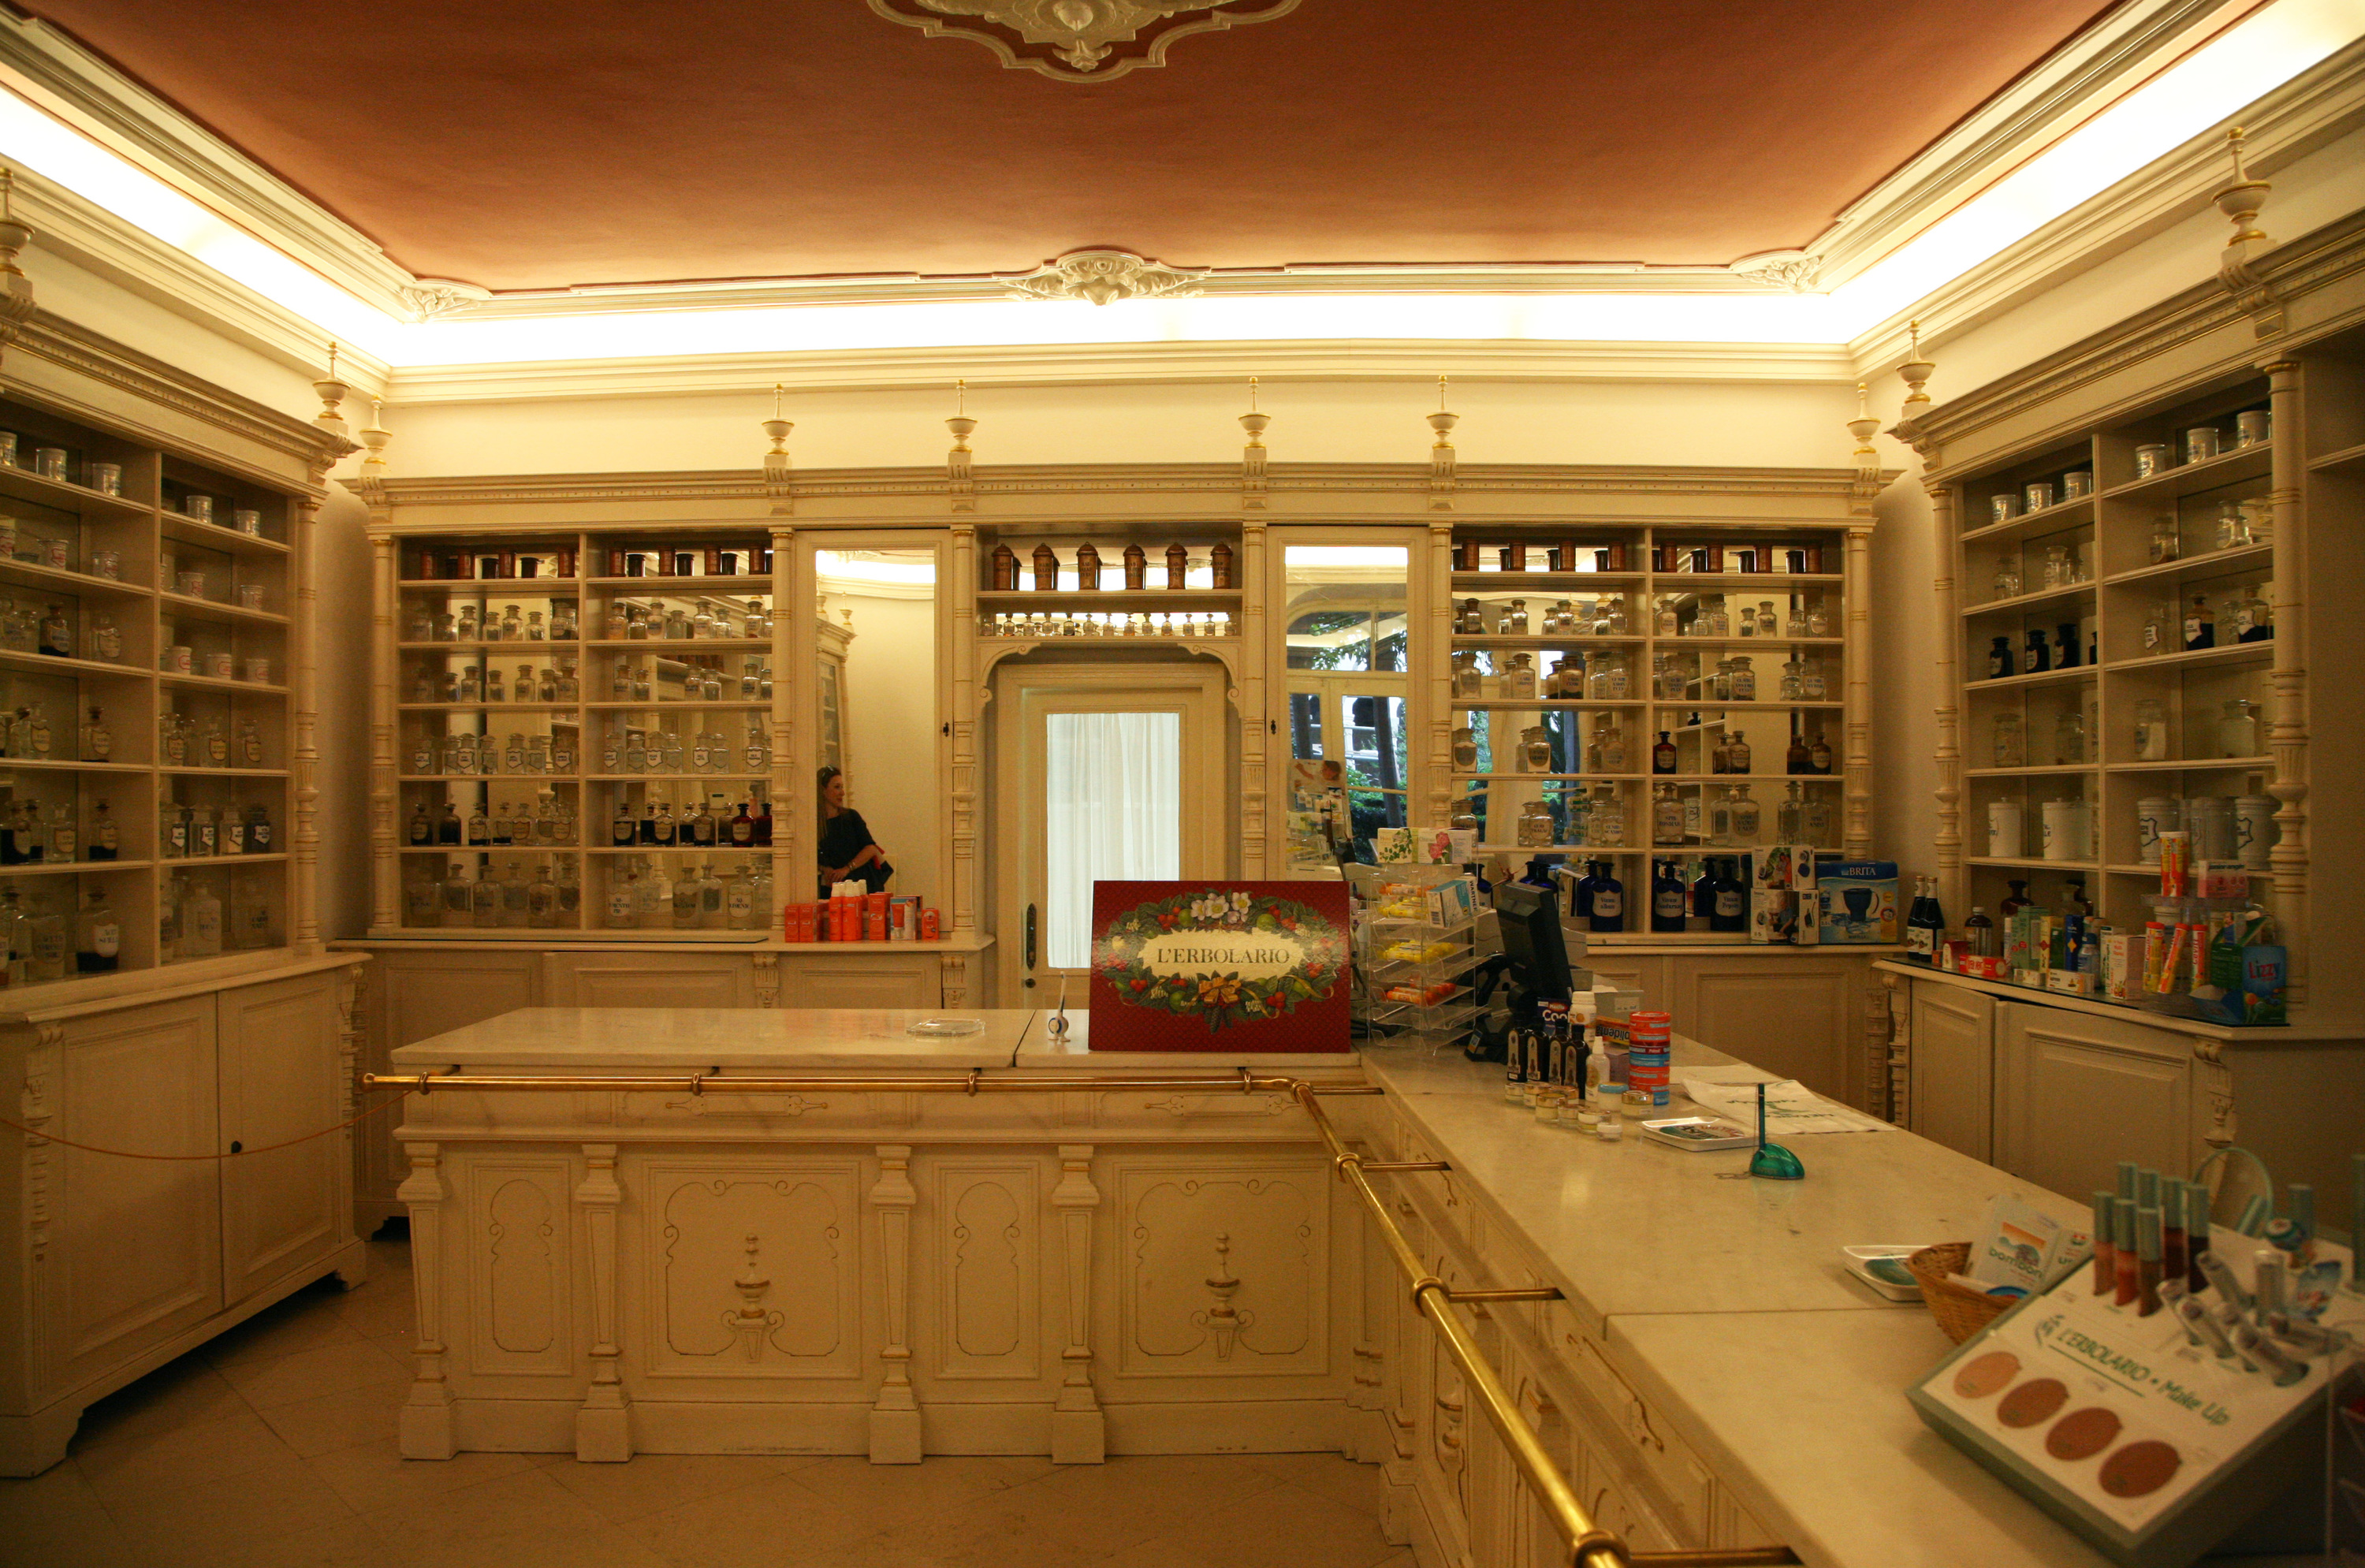 Franciscan Monastery/Old Pharmacy Museum